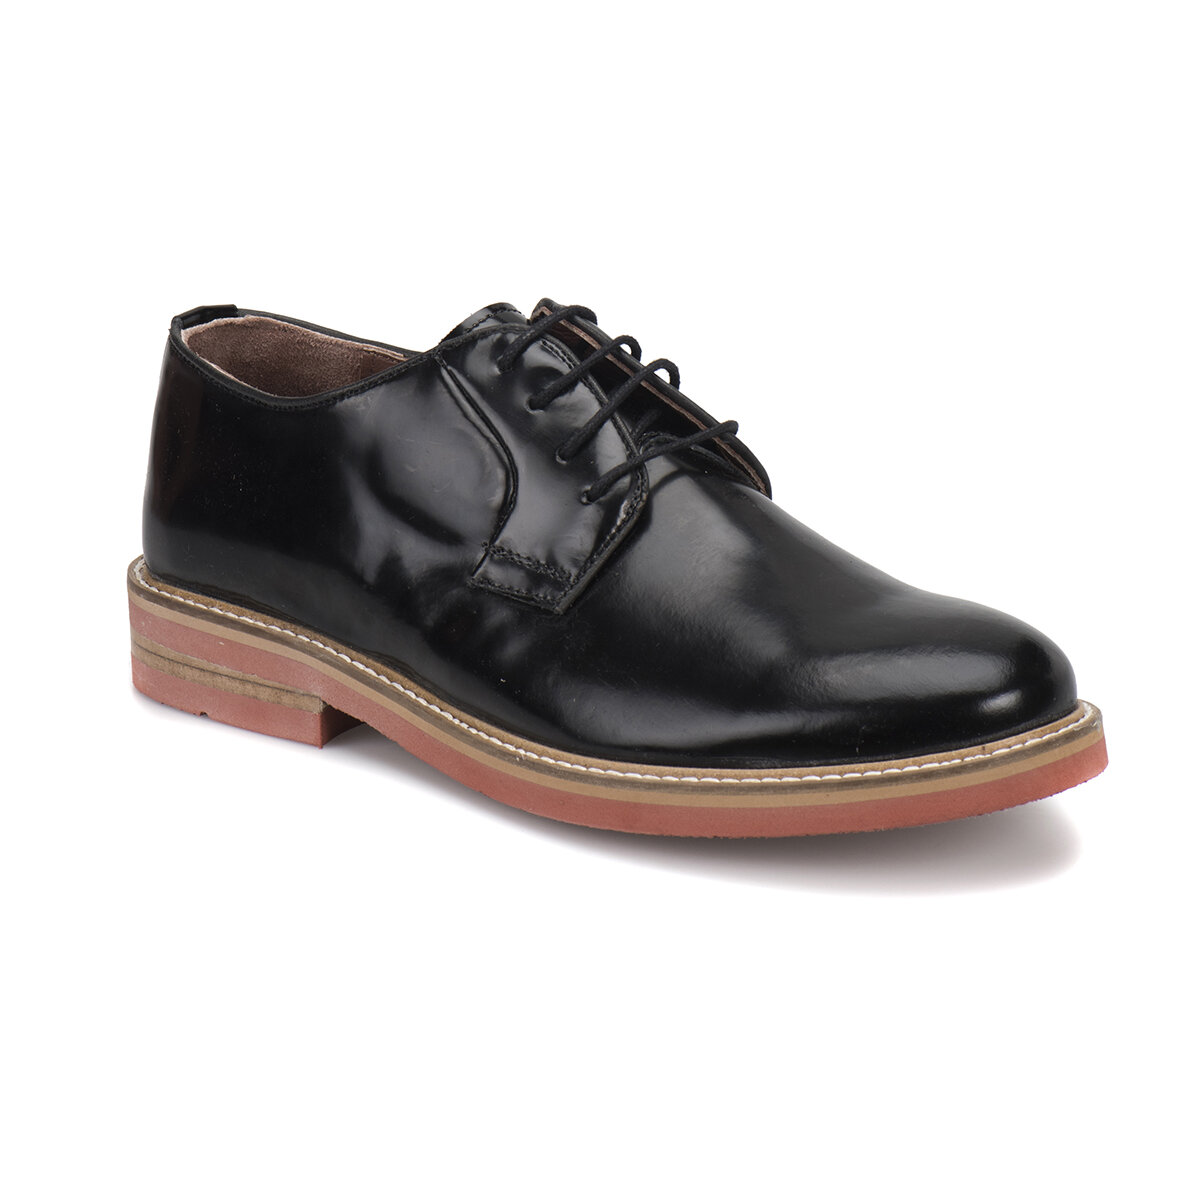 FLO 5954-1 M 1506 Black Male Modern Shoes Cordovan